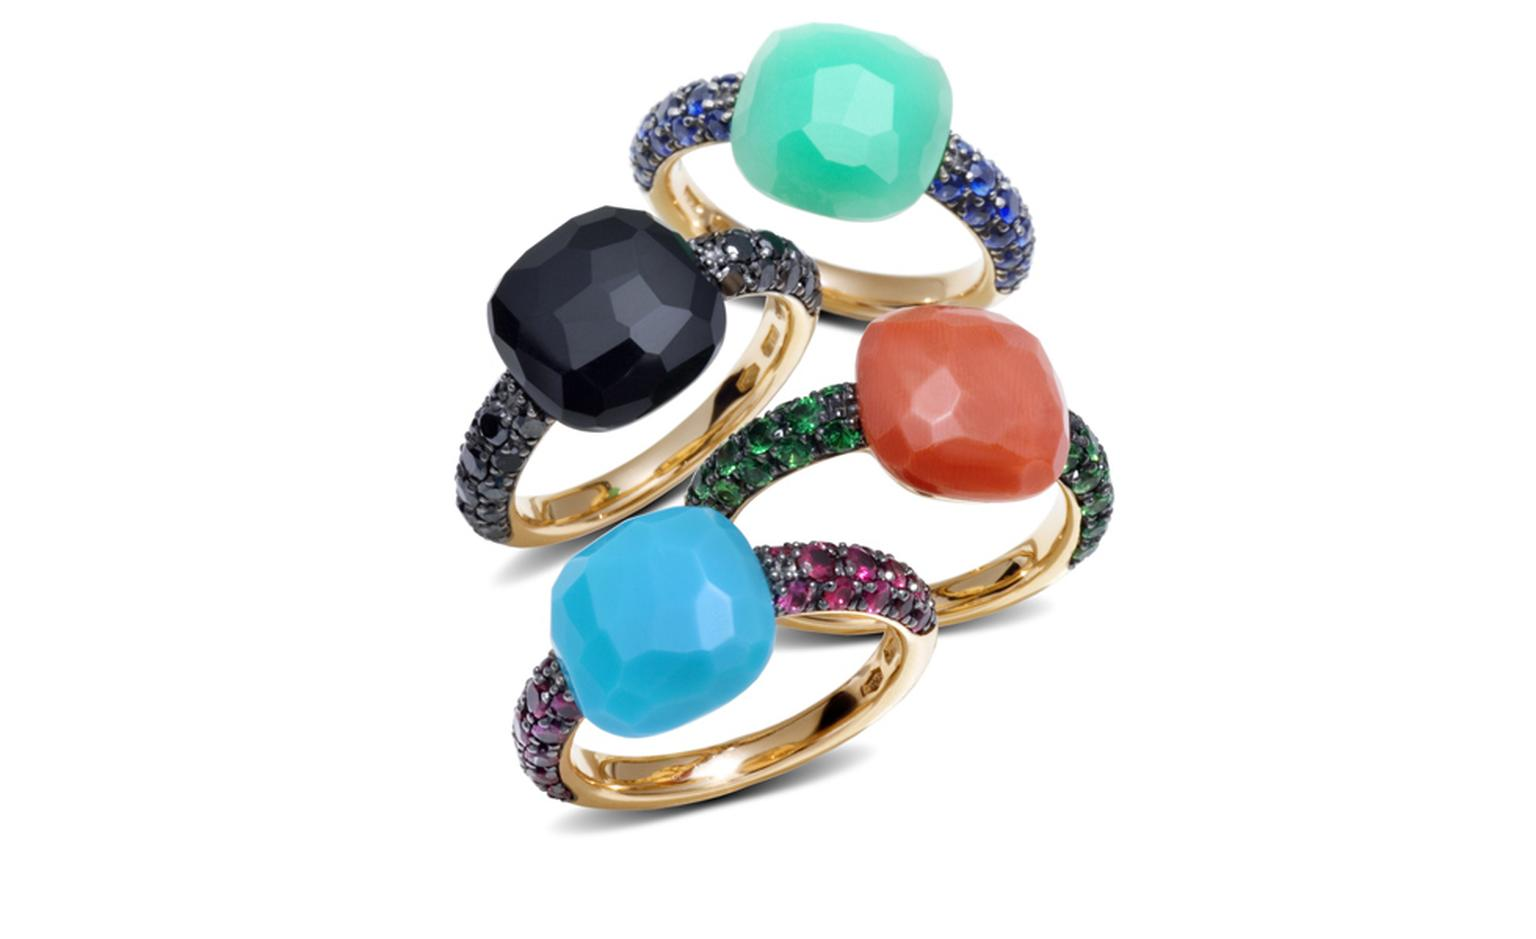 POMELLATO, Capri rings in rose gold turquoise and rubies, onyx and brown diamonds, coral and tsavorites, chrysoprase and blue sapphires. Starting from £1,770